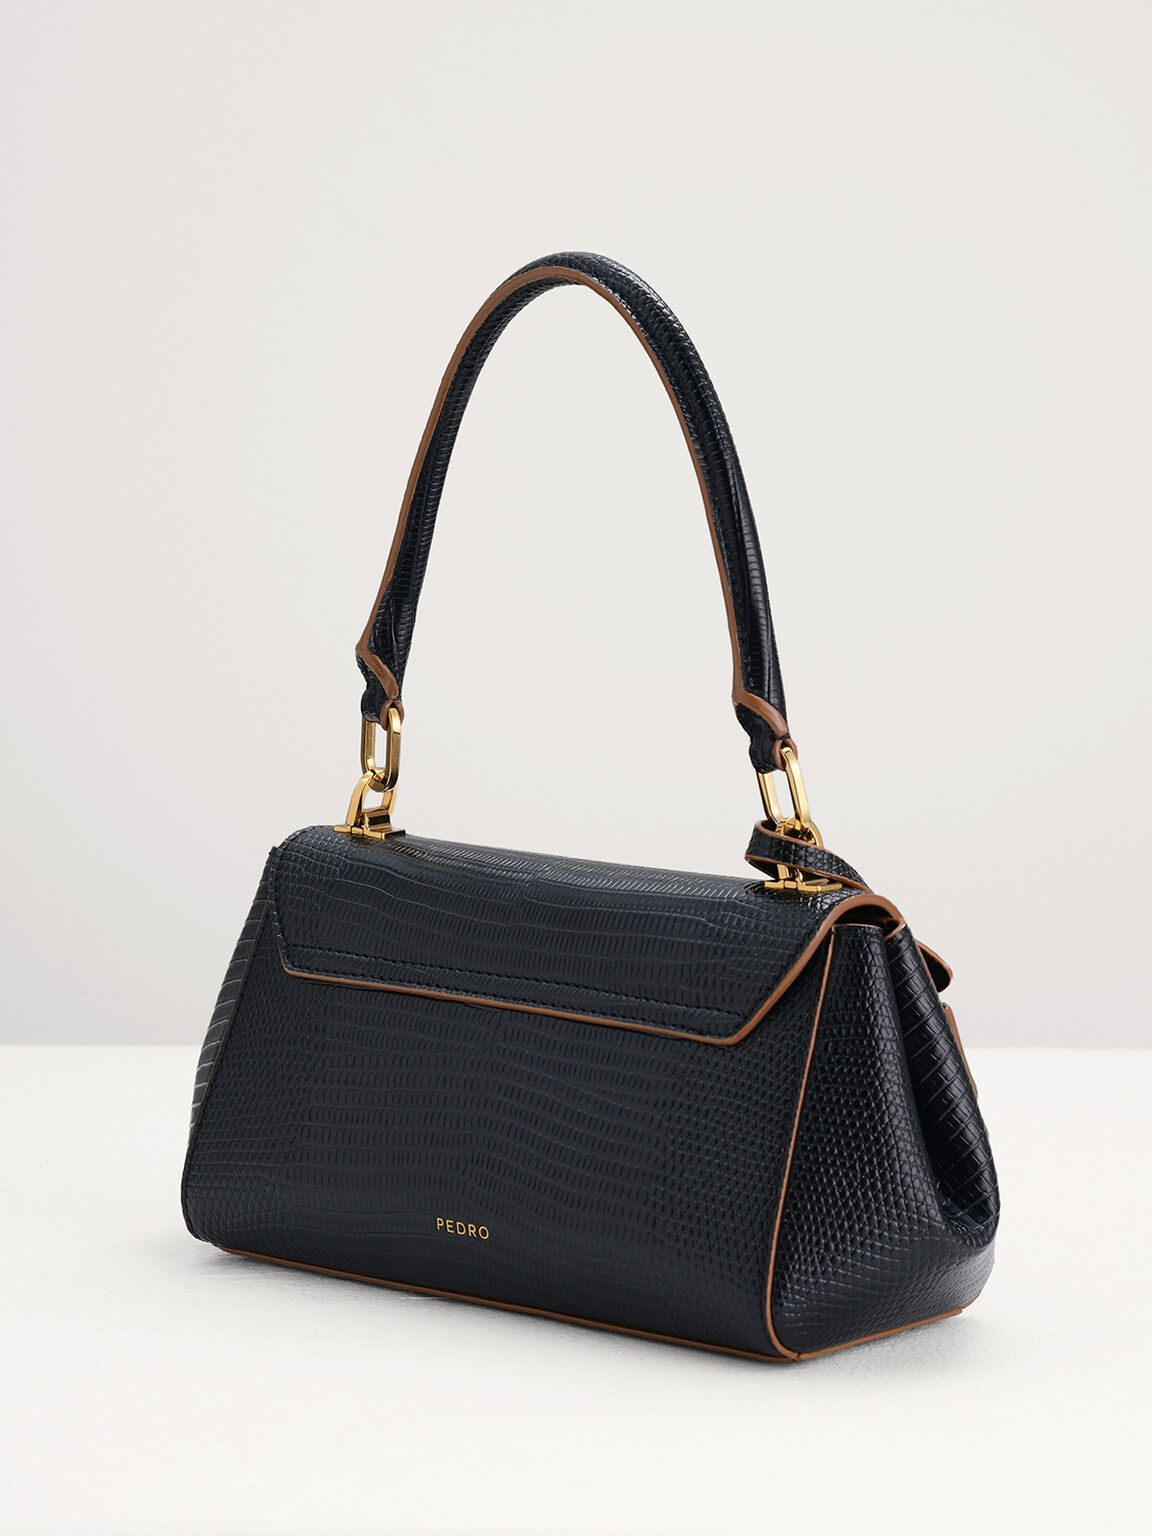 Lizard-Effect Top Handle Bag, Black, hi-res